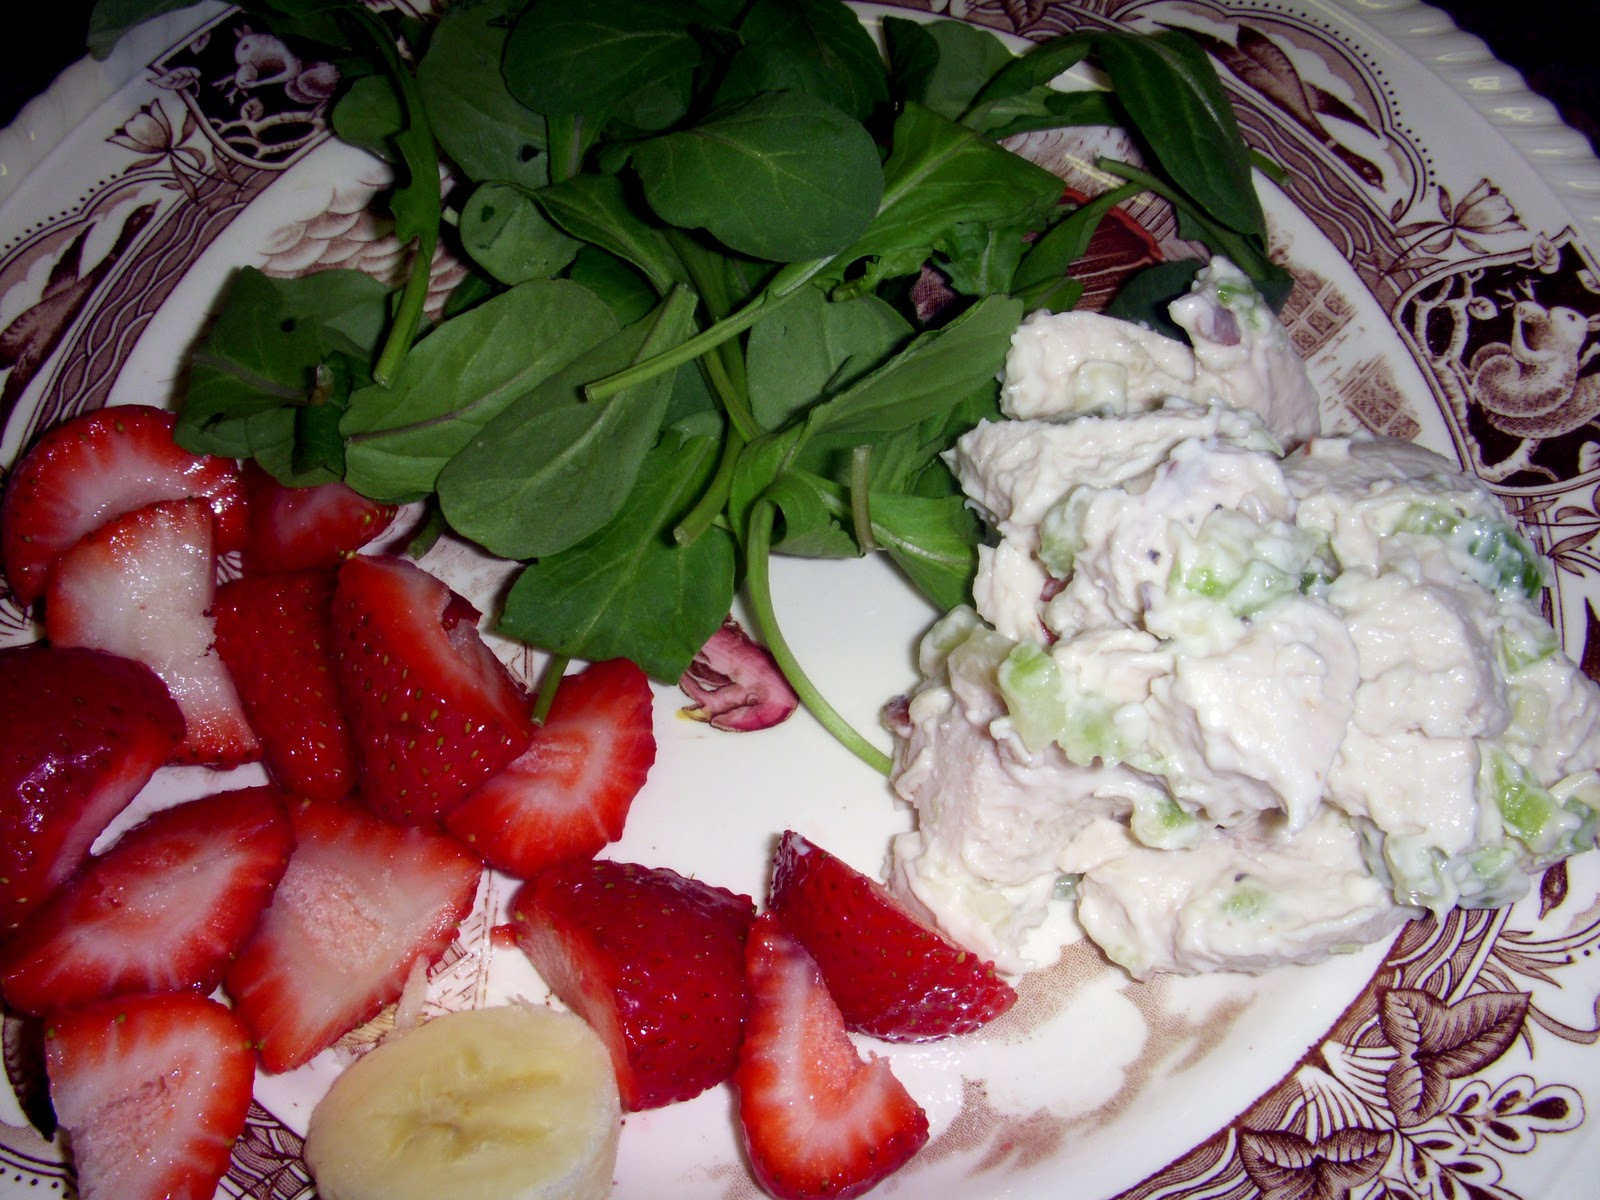 Neiman Marcus Chicken Salad Dallas Duo Bakes